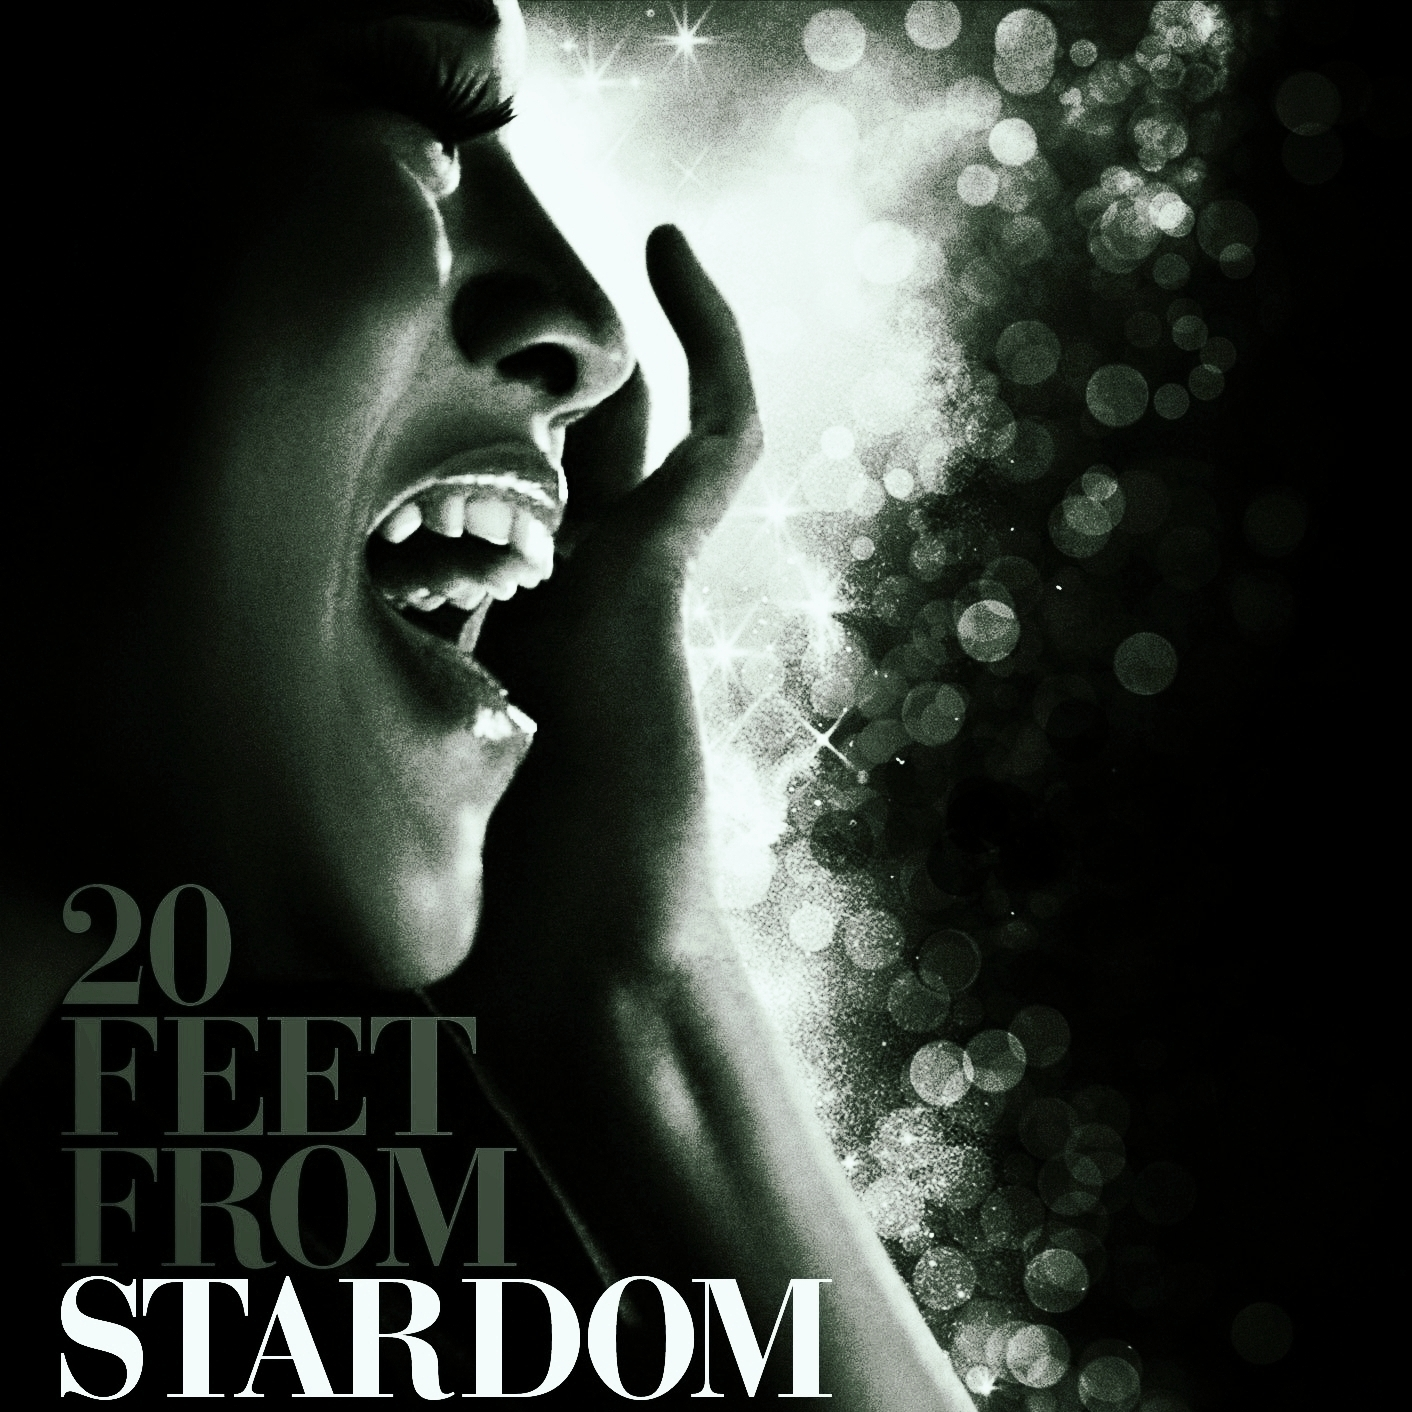 20 Feet from Stardom    When I saw this moving documentary at Sundance, I cornered director Morgan Neville in the snowy parking lot. Okay, maybe it wasn't THAT dramatic...but we ended up putting together a great soundtrack.